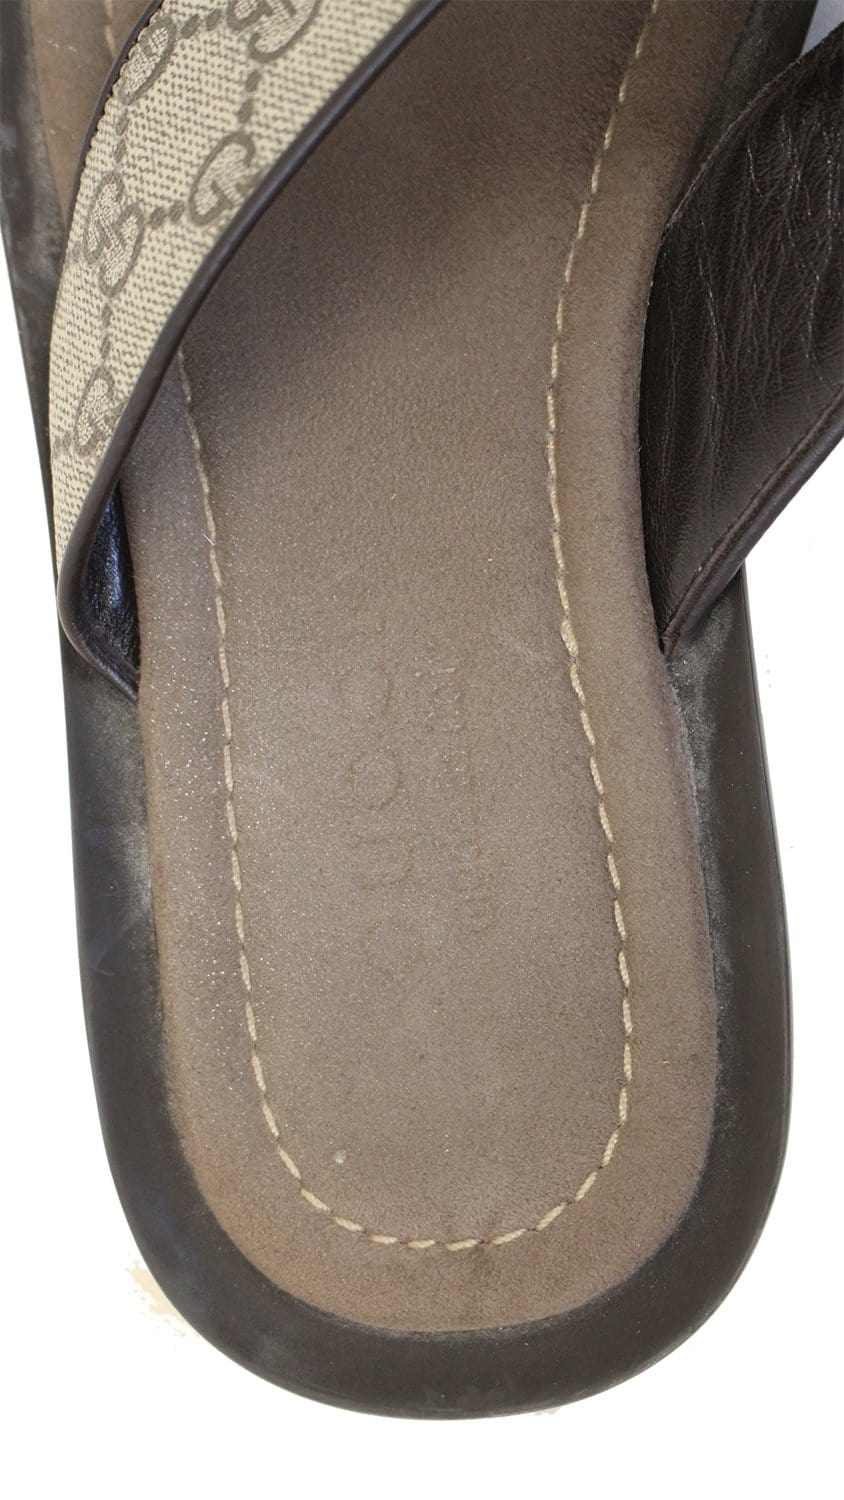 Gucci Gg Supreme Mens Leather Flip Flops Sandals Size 9 G -8143